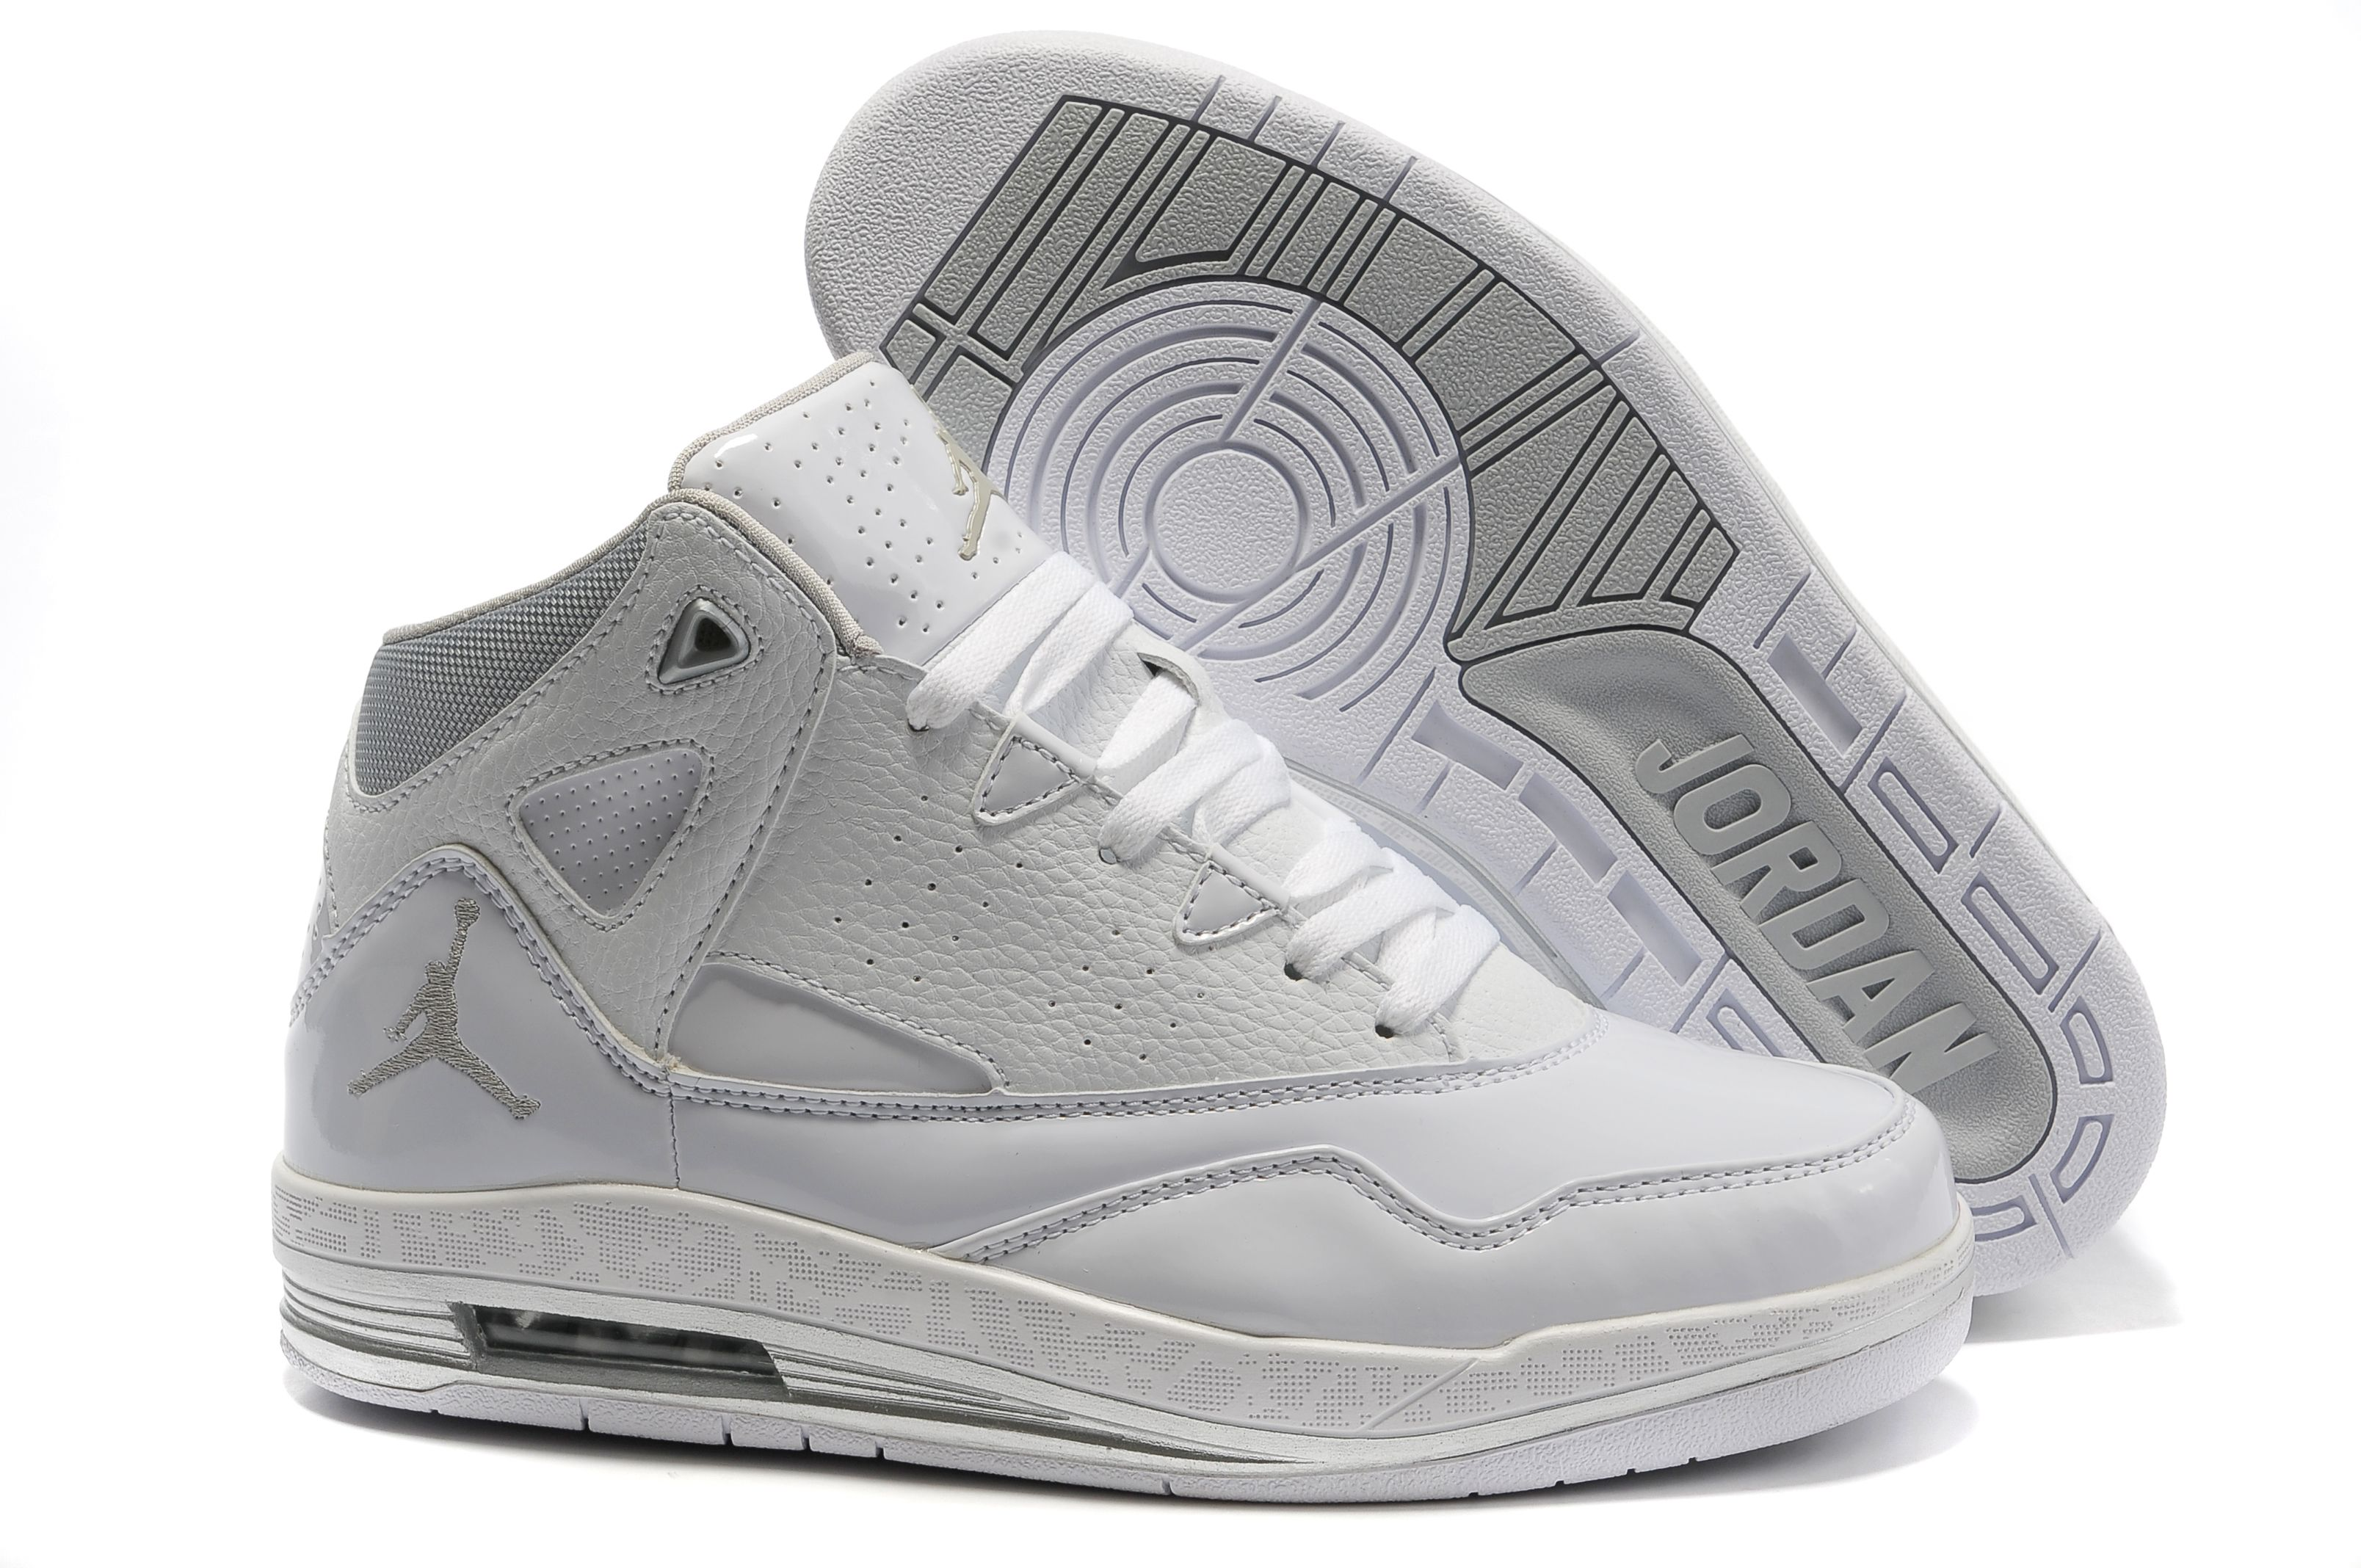 Distinguir Integrar Fácil de suceder  Nike Air Jordan Jumpman Team II GS Hombre Blanco en 2020 | Zapatillas para  correr, Nike air jordan, Air jordans